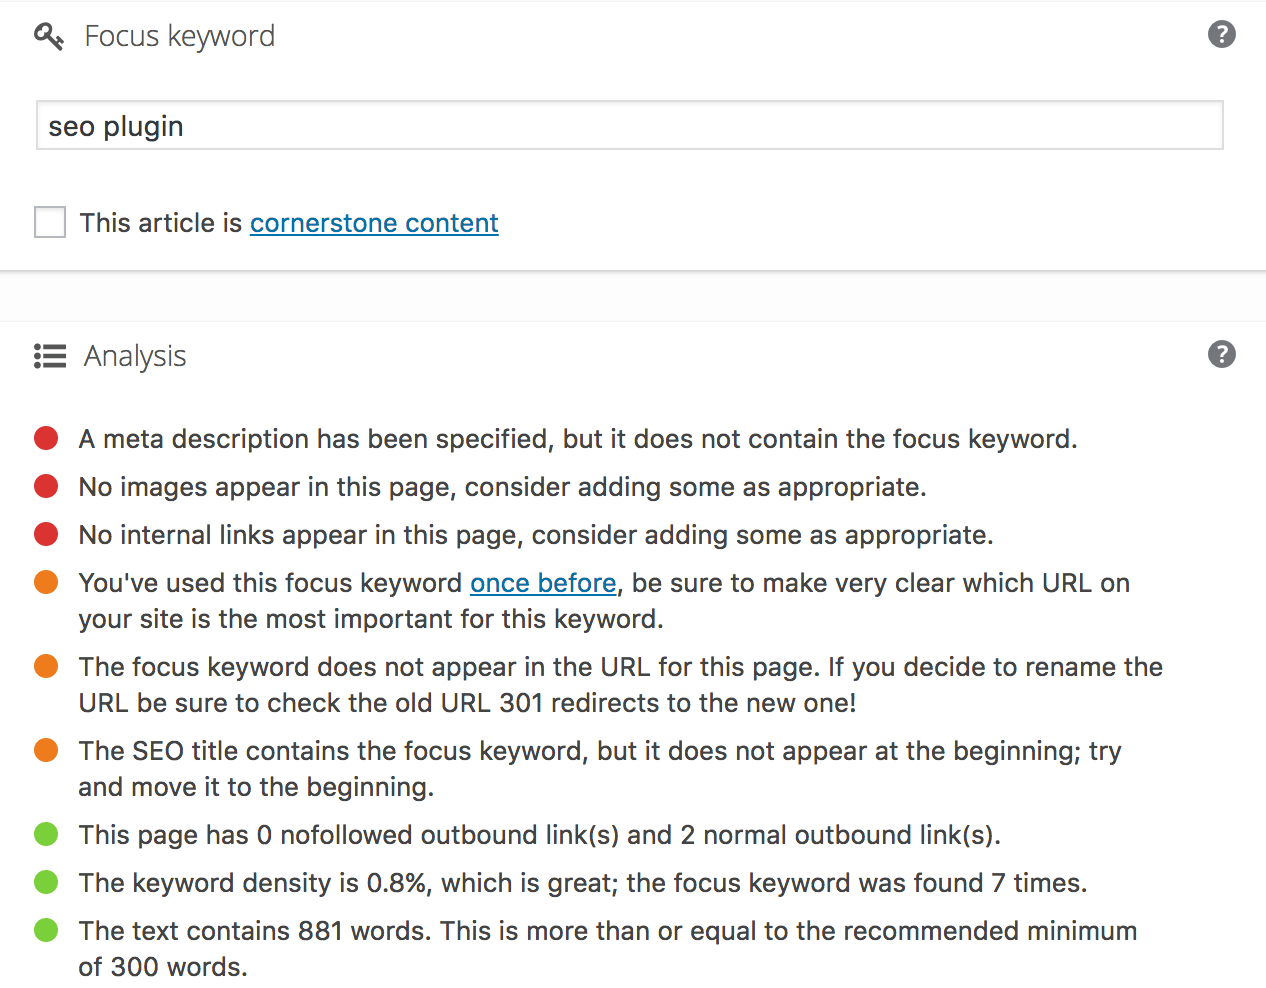 yoast-seo-keyword-page-analysis